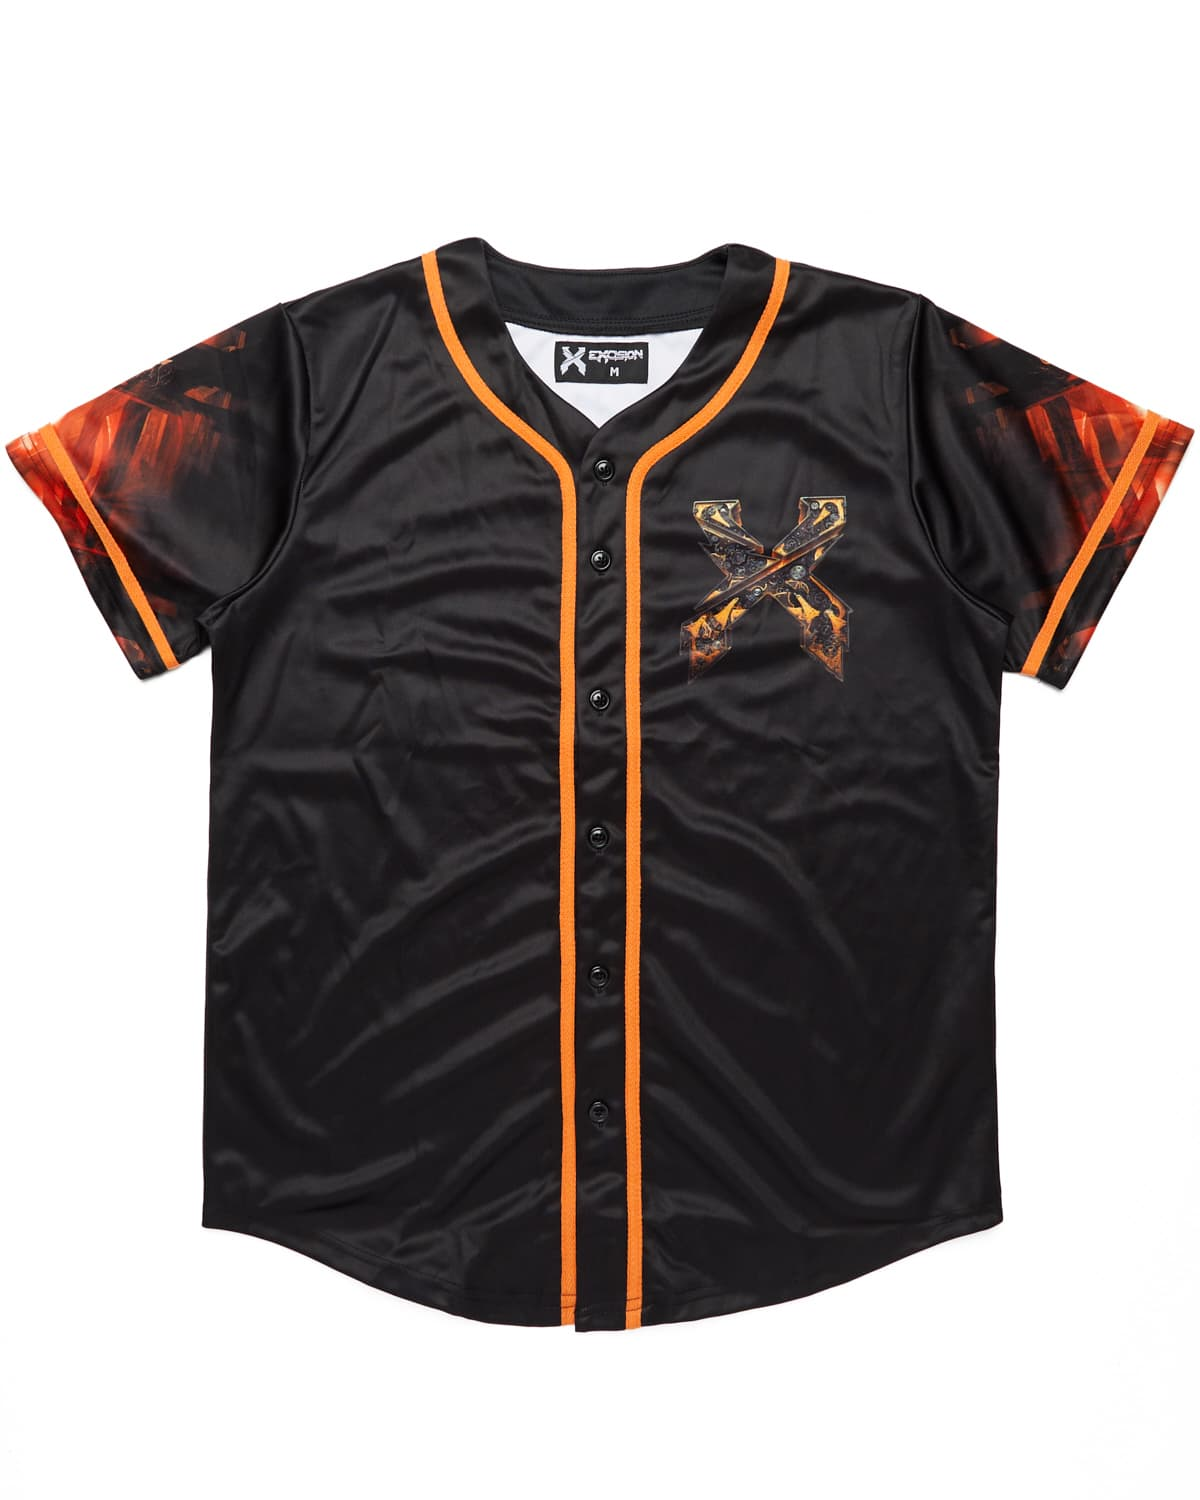 Evolution Tour Baseball Jersey - Black/Orange